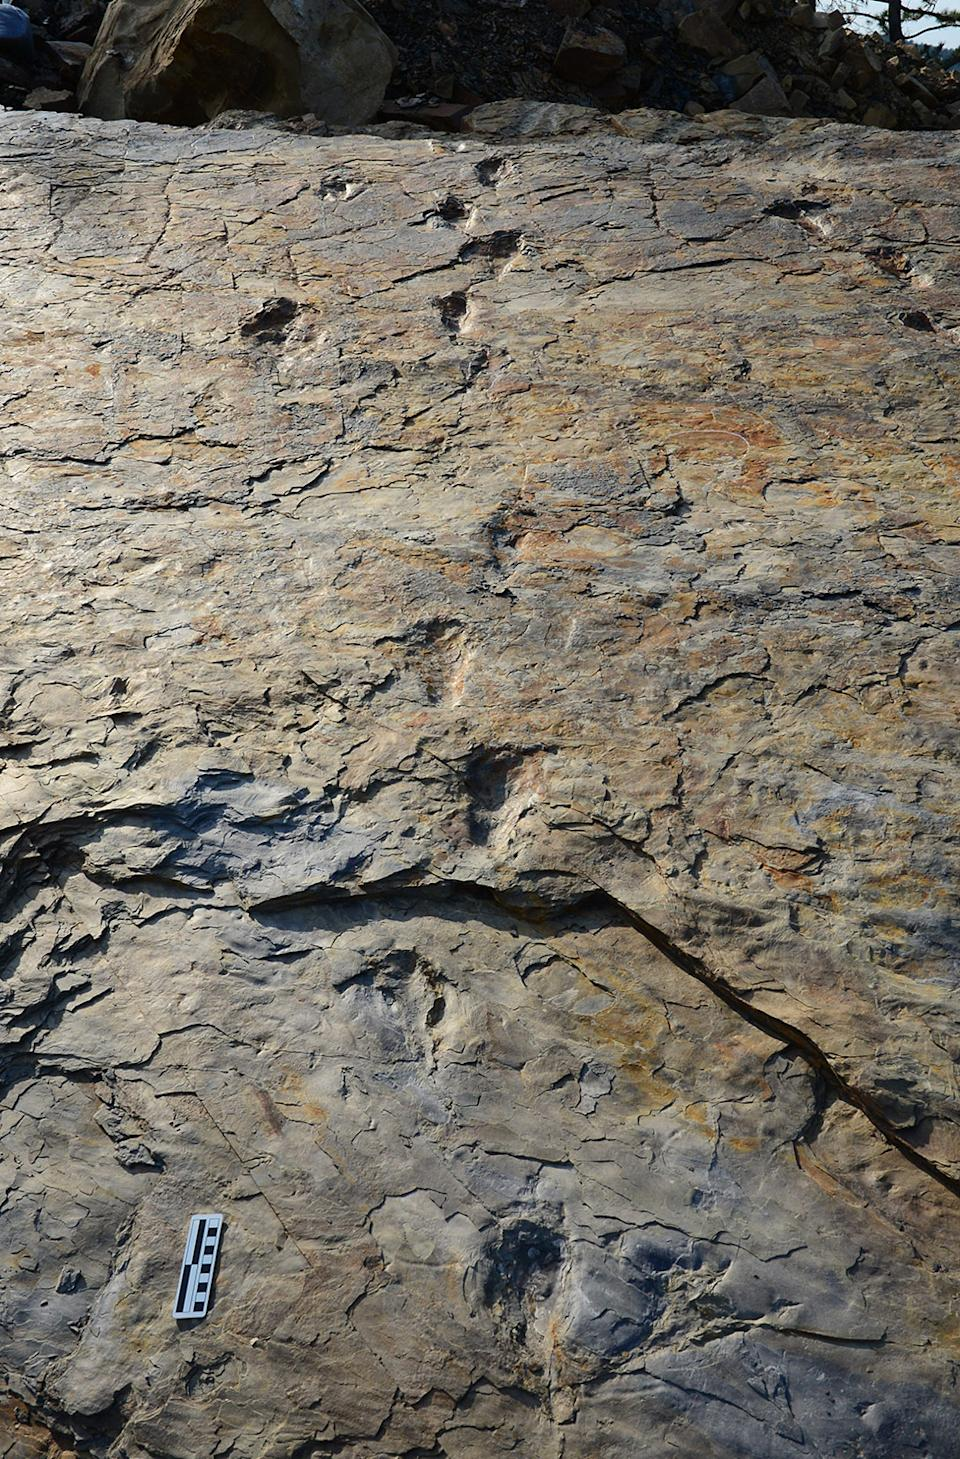 South Korea has a huge variety of fossil paths - but relatively few fossil bones